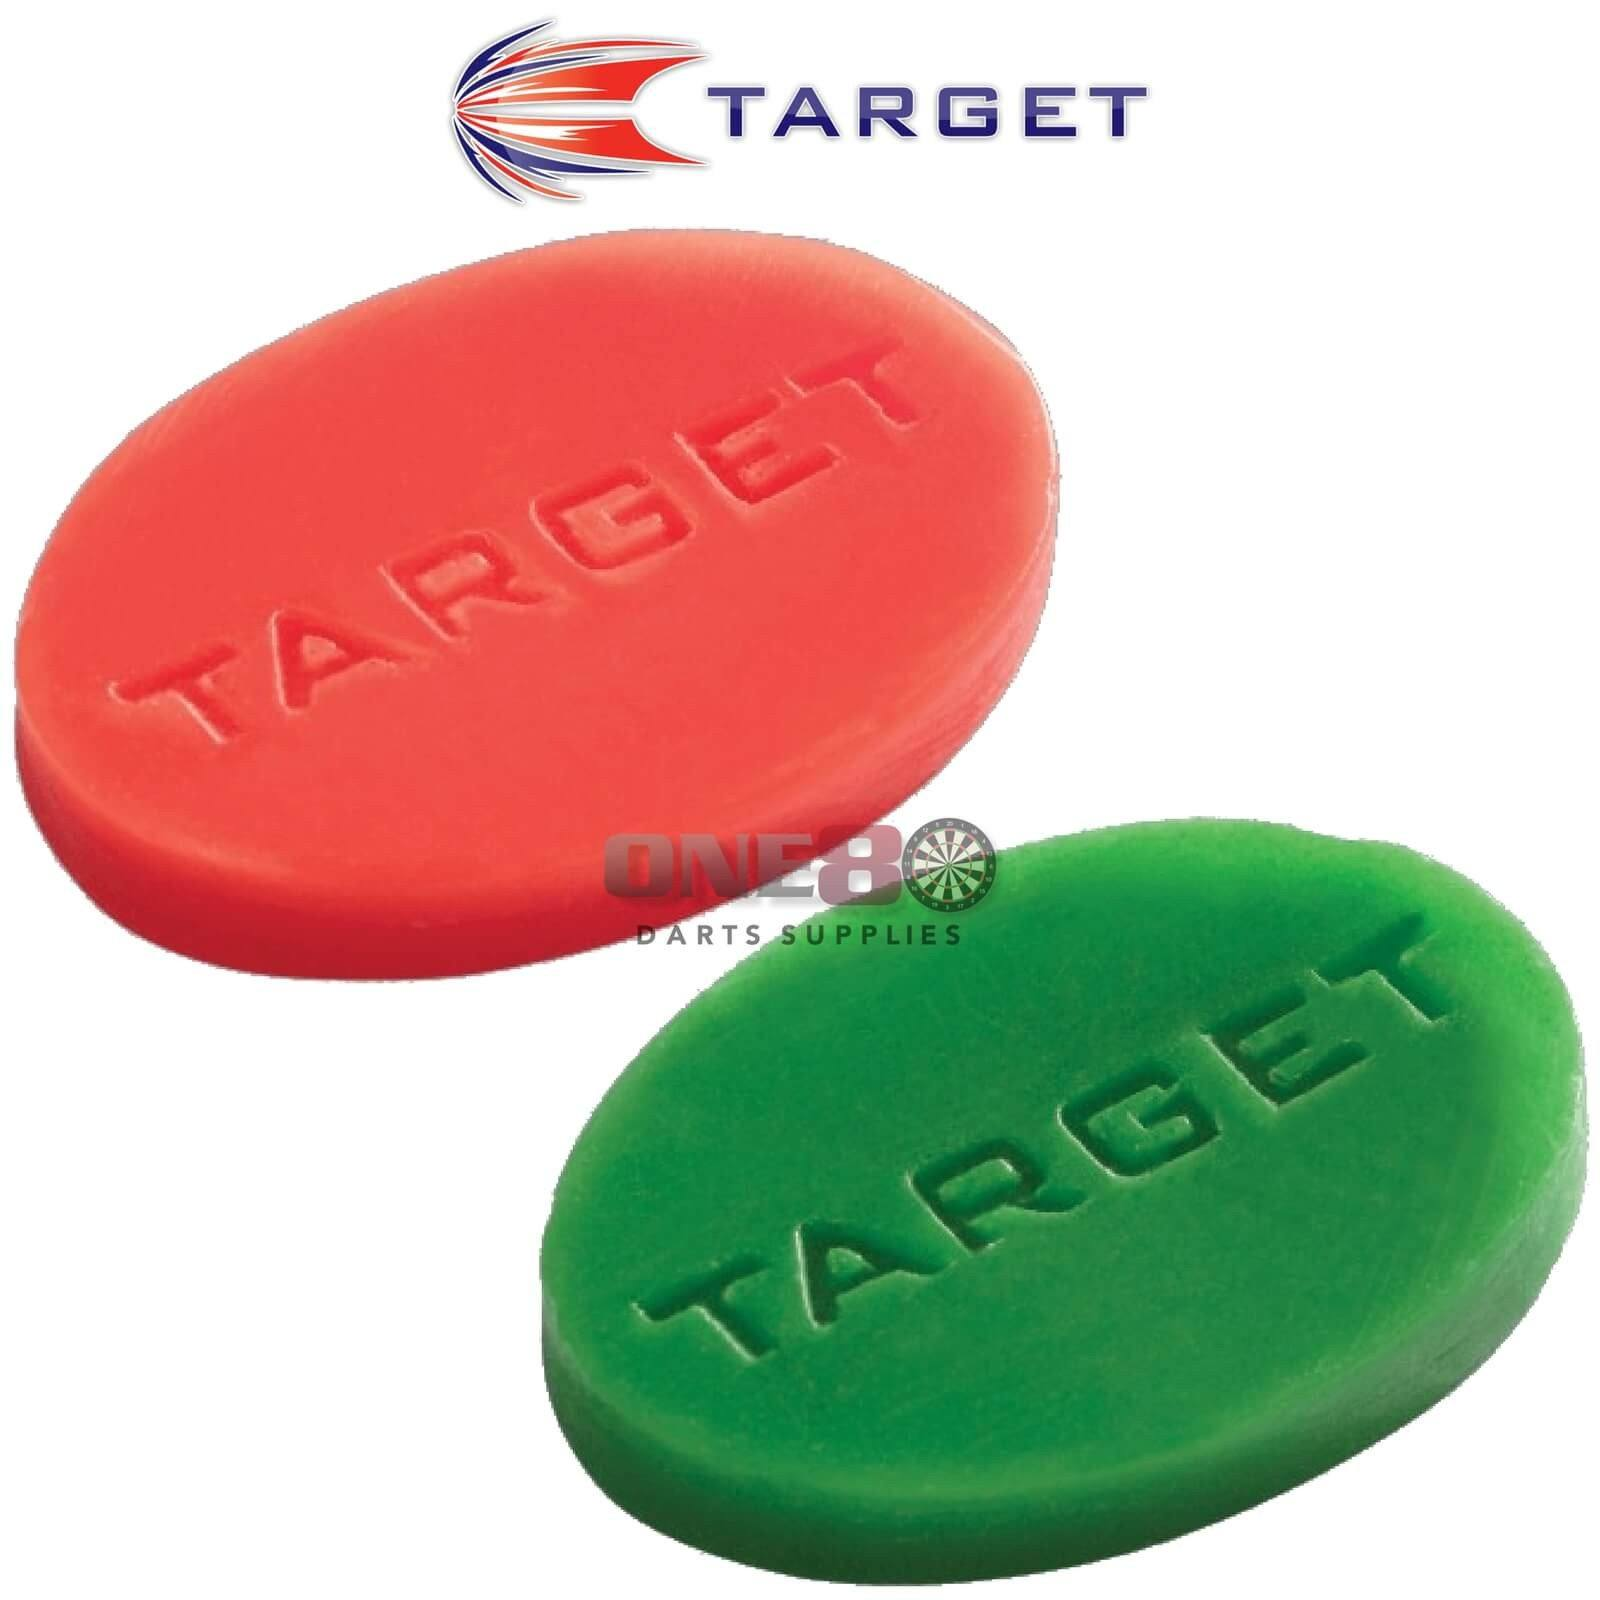 Grip Accessories - Target - Non Slip Dart Finger Grip Wax